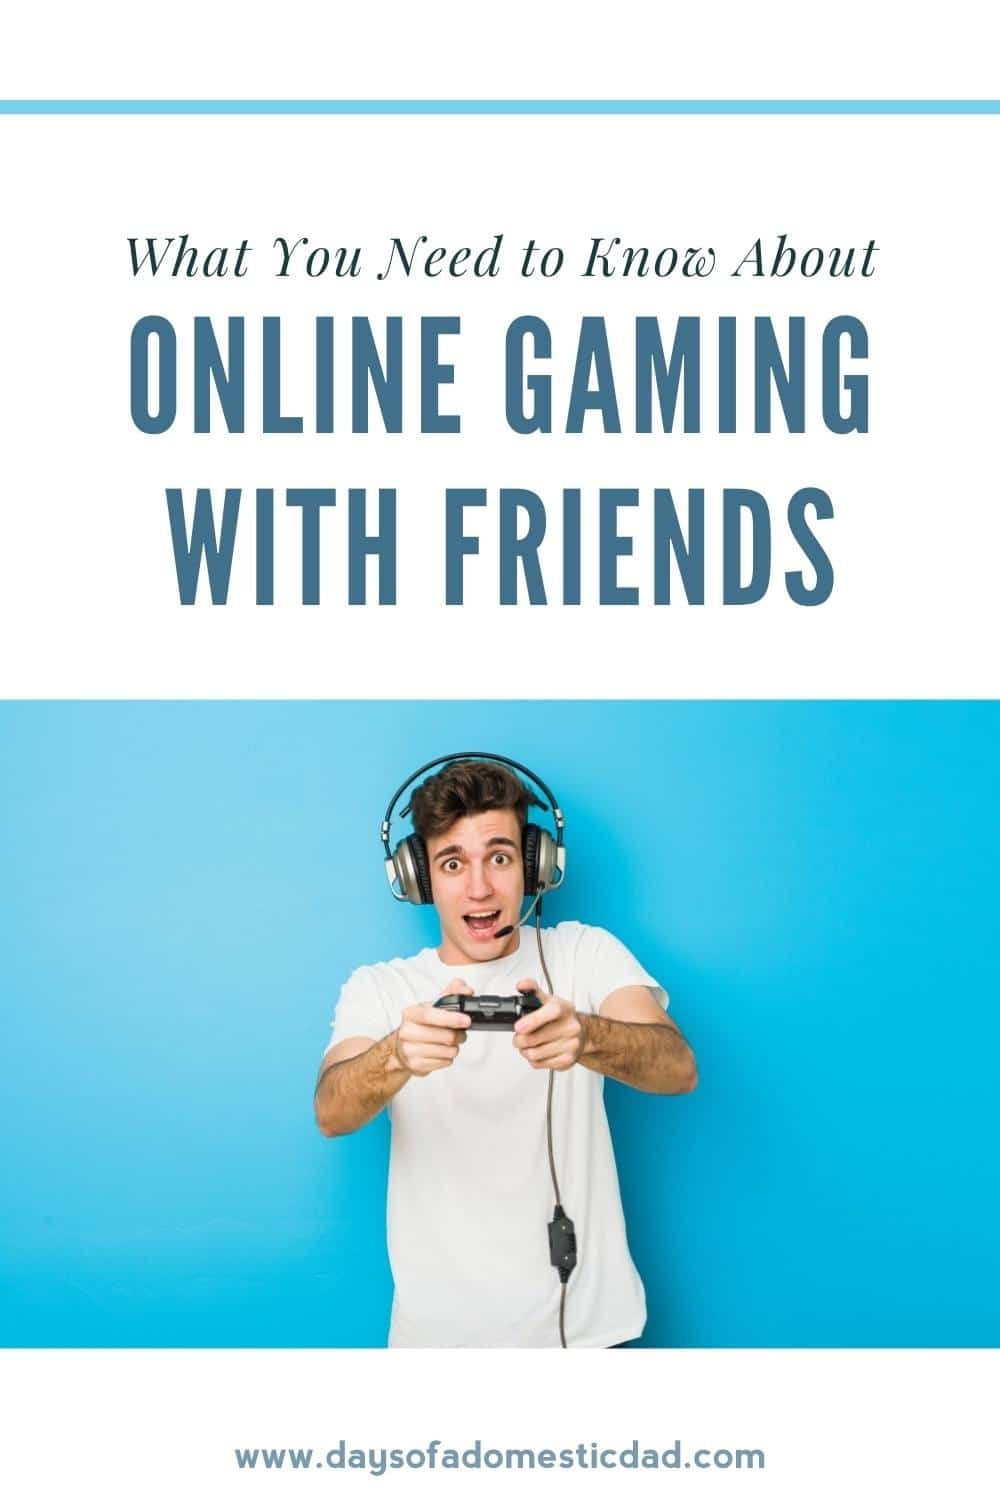 What You Need to Know About Online Gaming with Friends